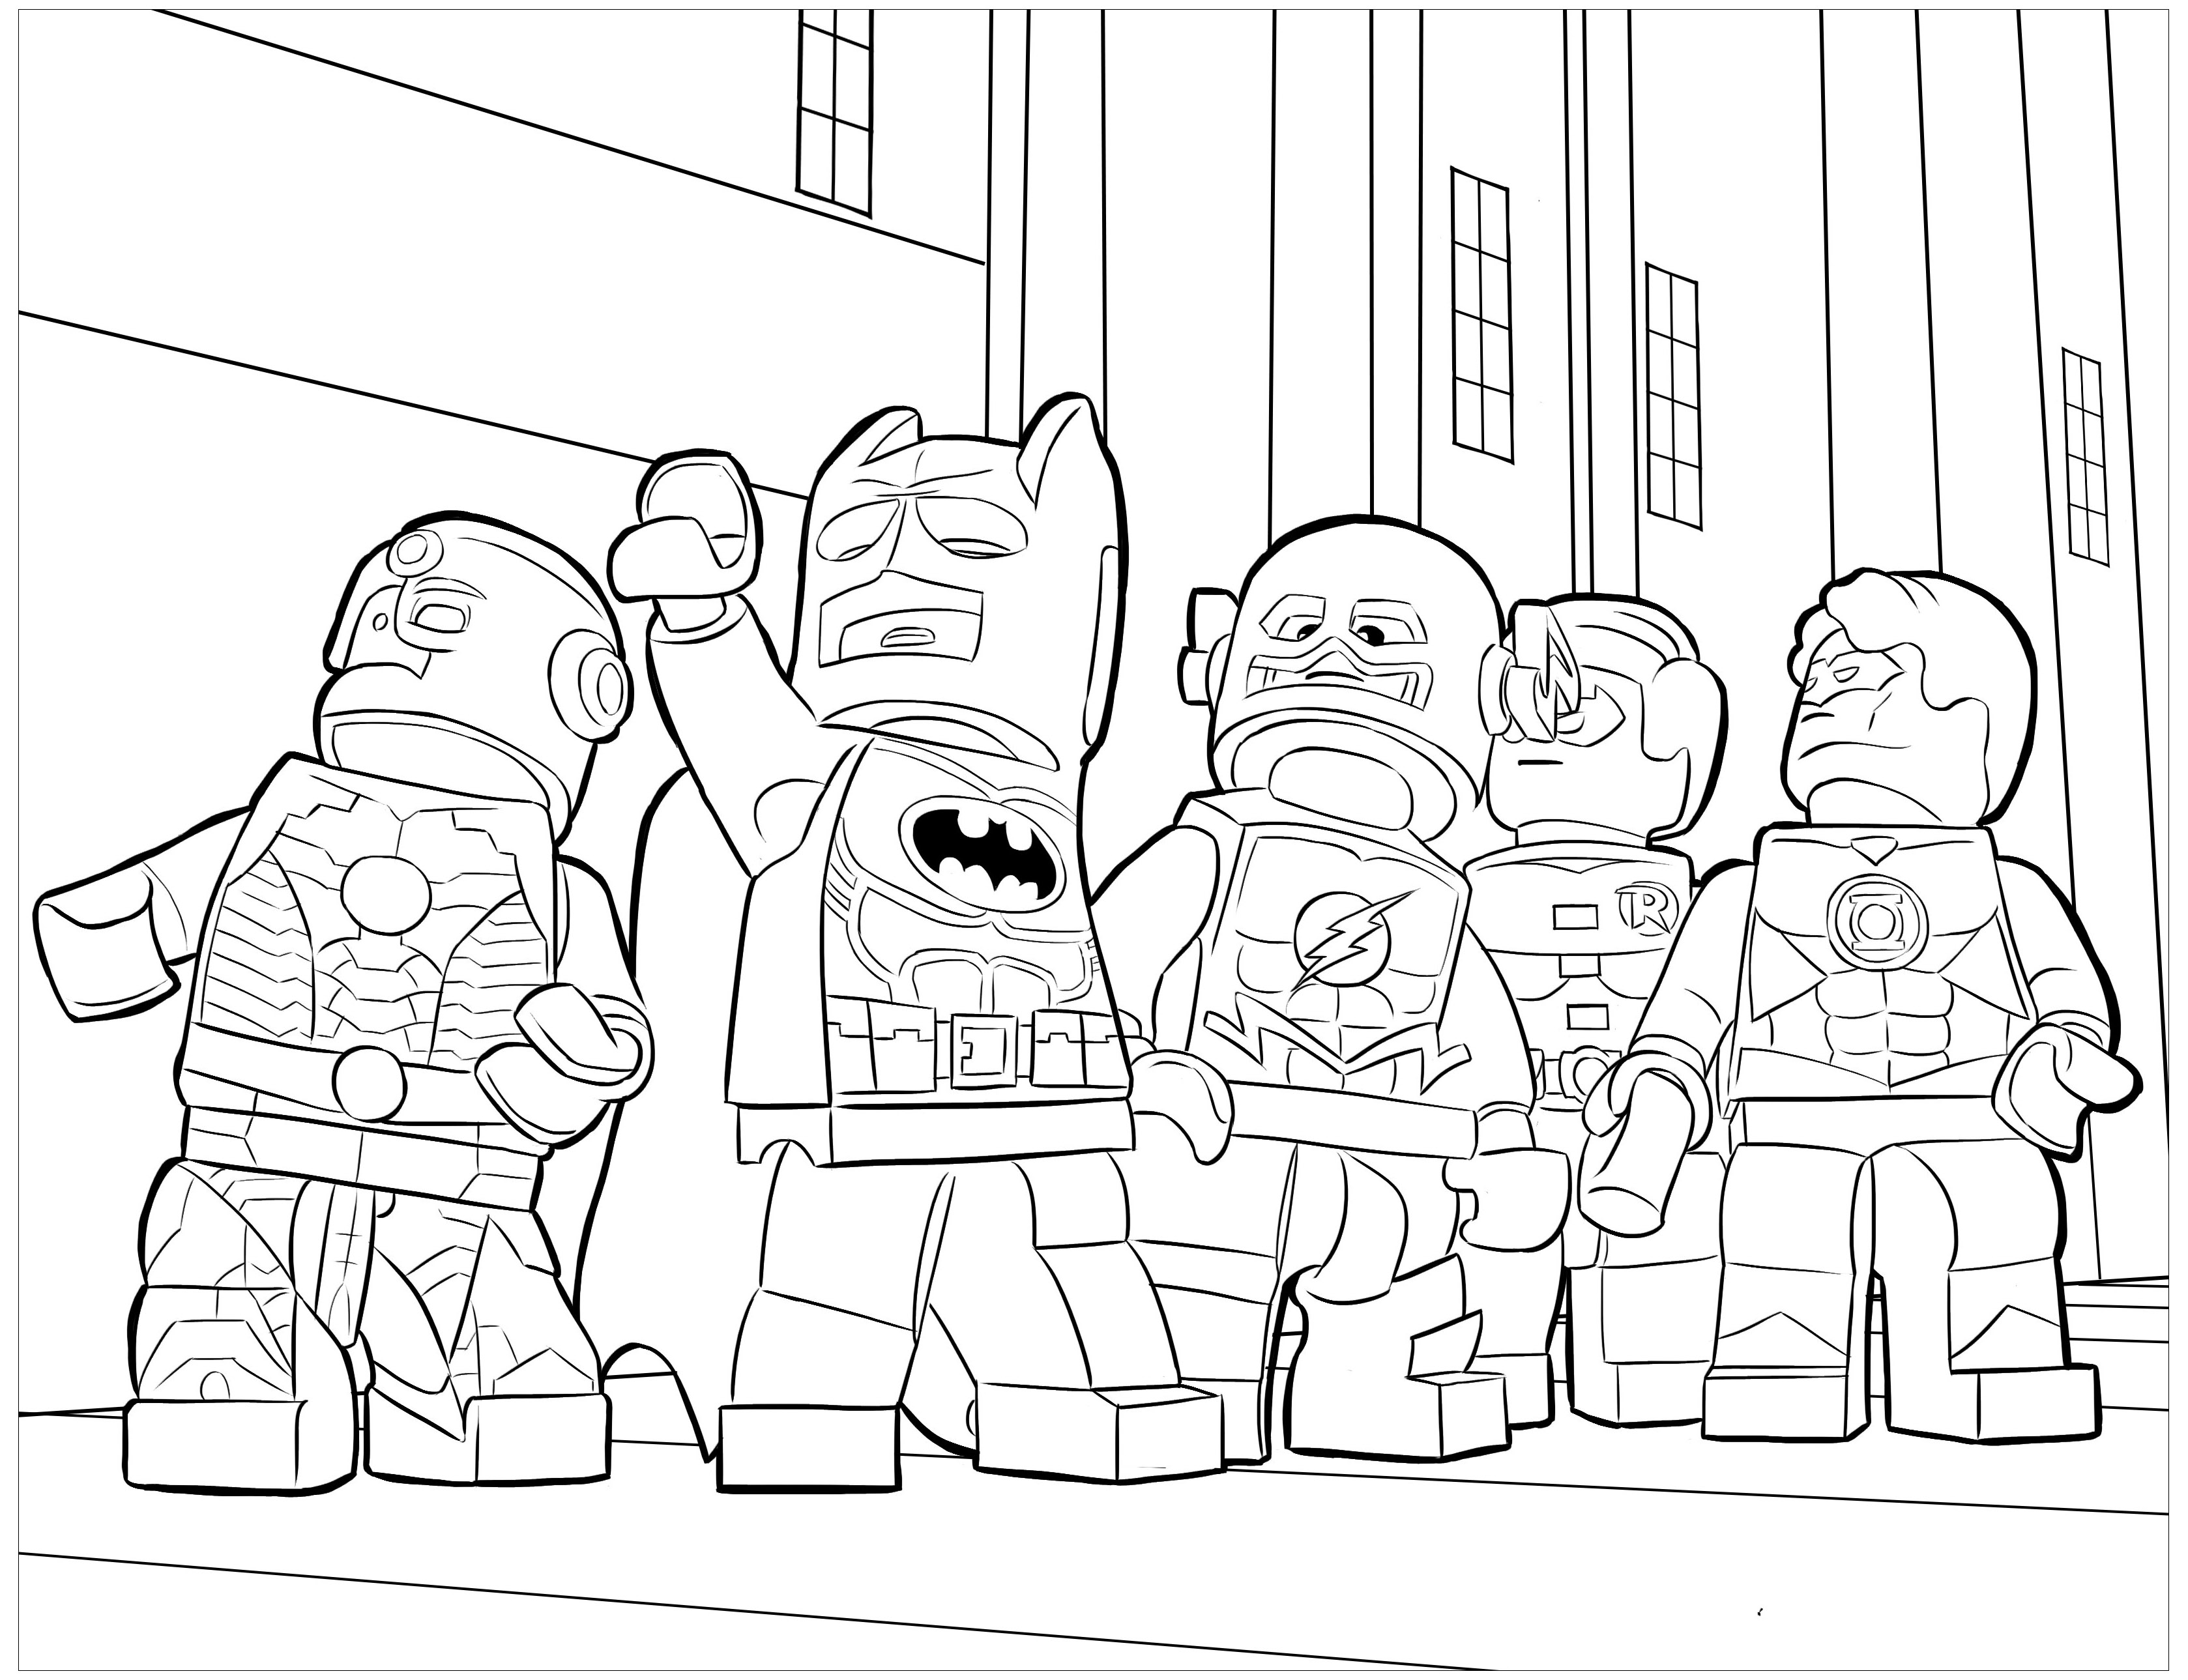 Lego Batman 2 Coloring Pages Batman Lego Coloring Pages Cmseal - Drawing Coloring Page